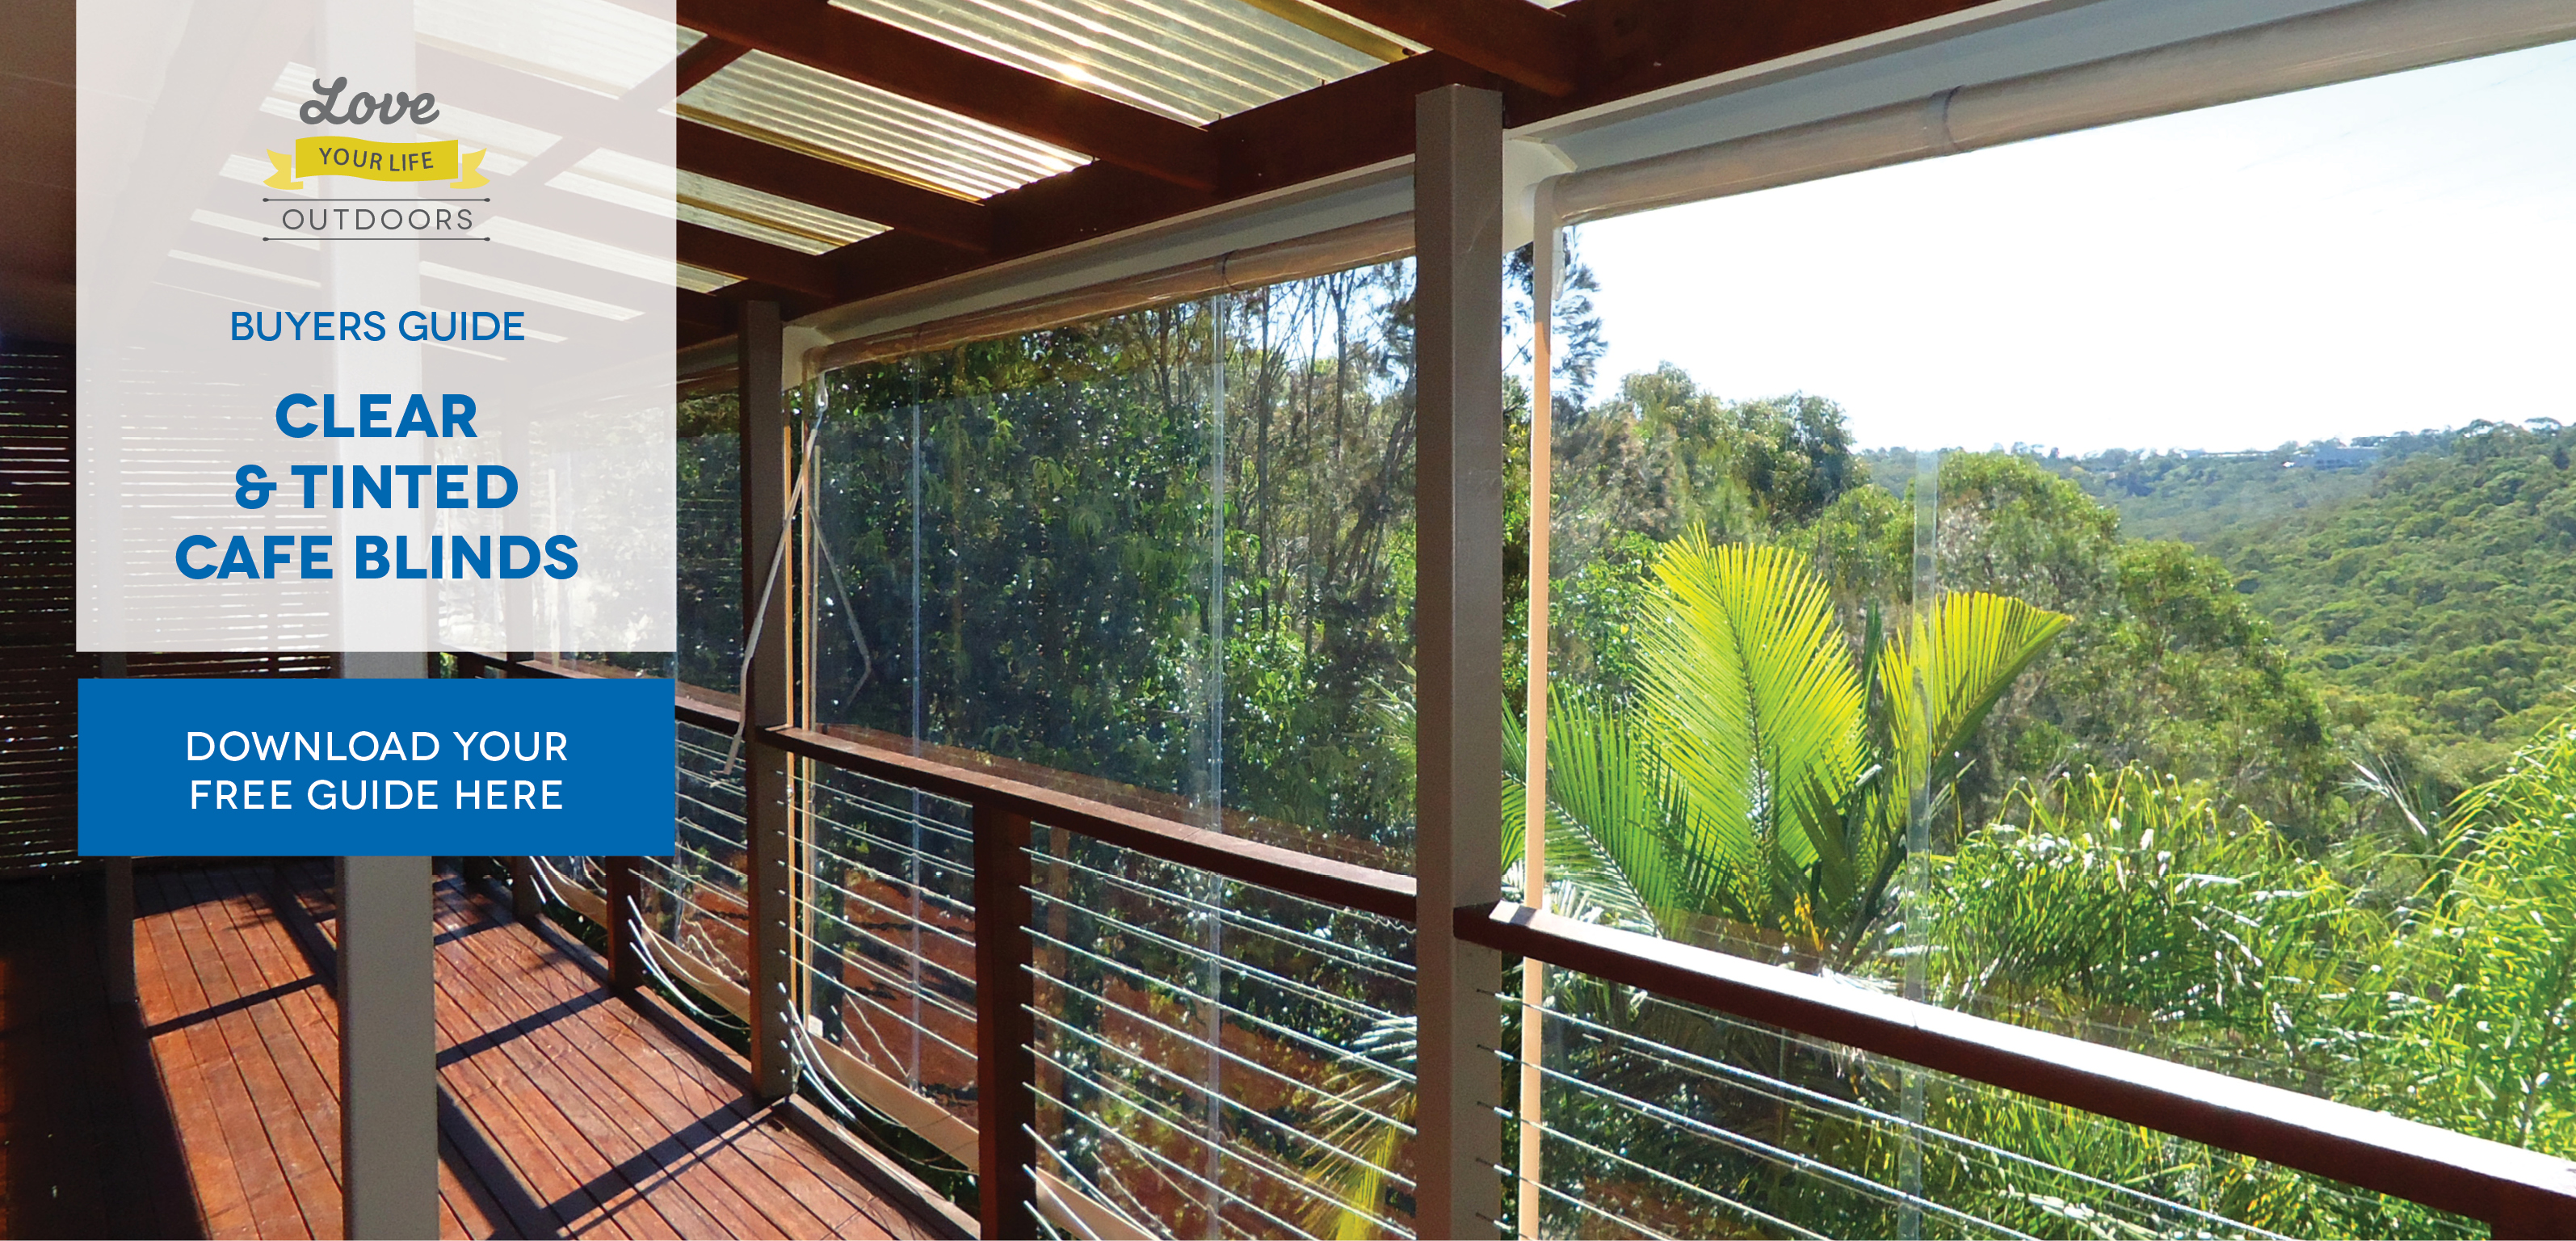 porch bamboo mount outside home shades for design screened outdoor deck blinds idea exterior roller are landscaping here